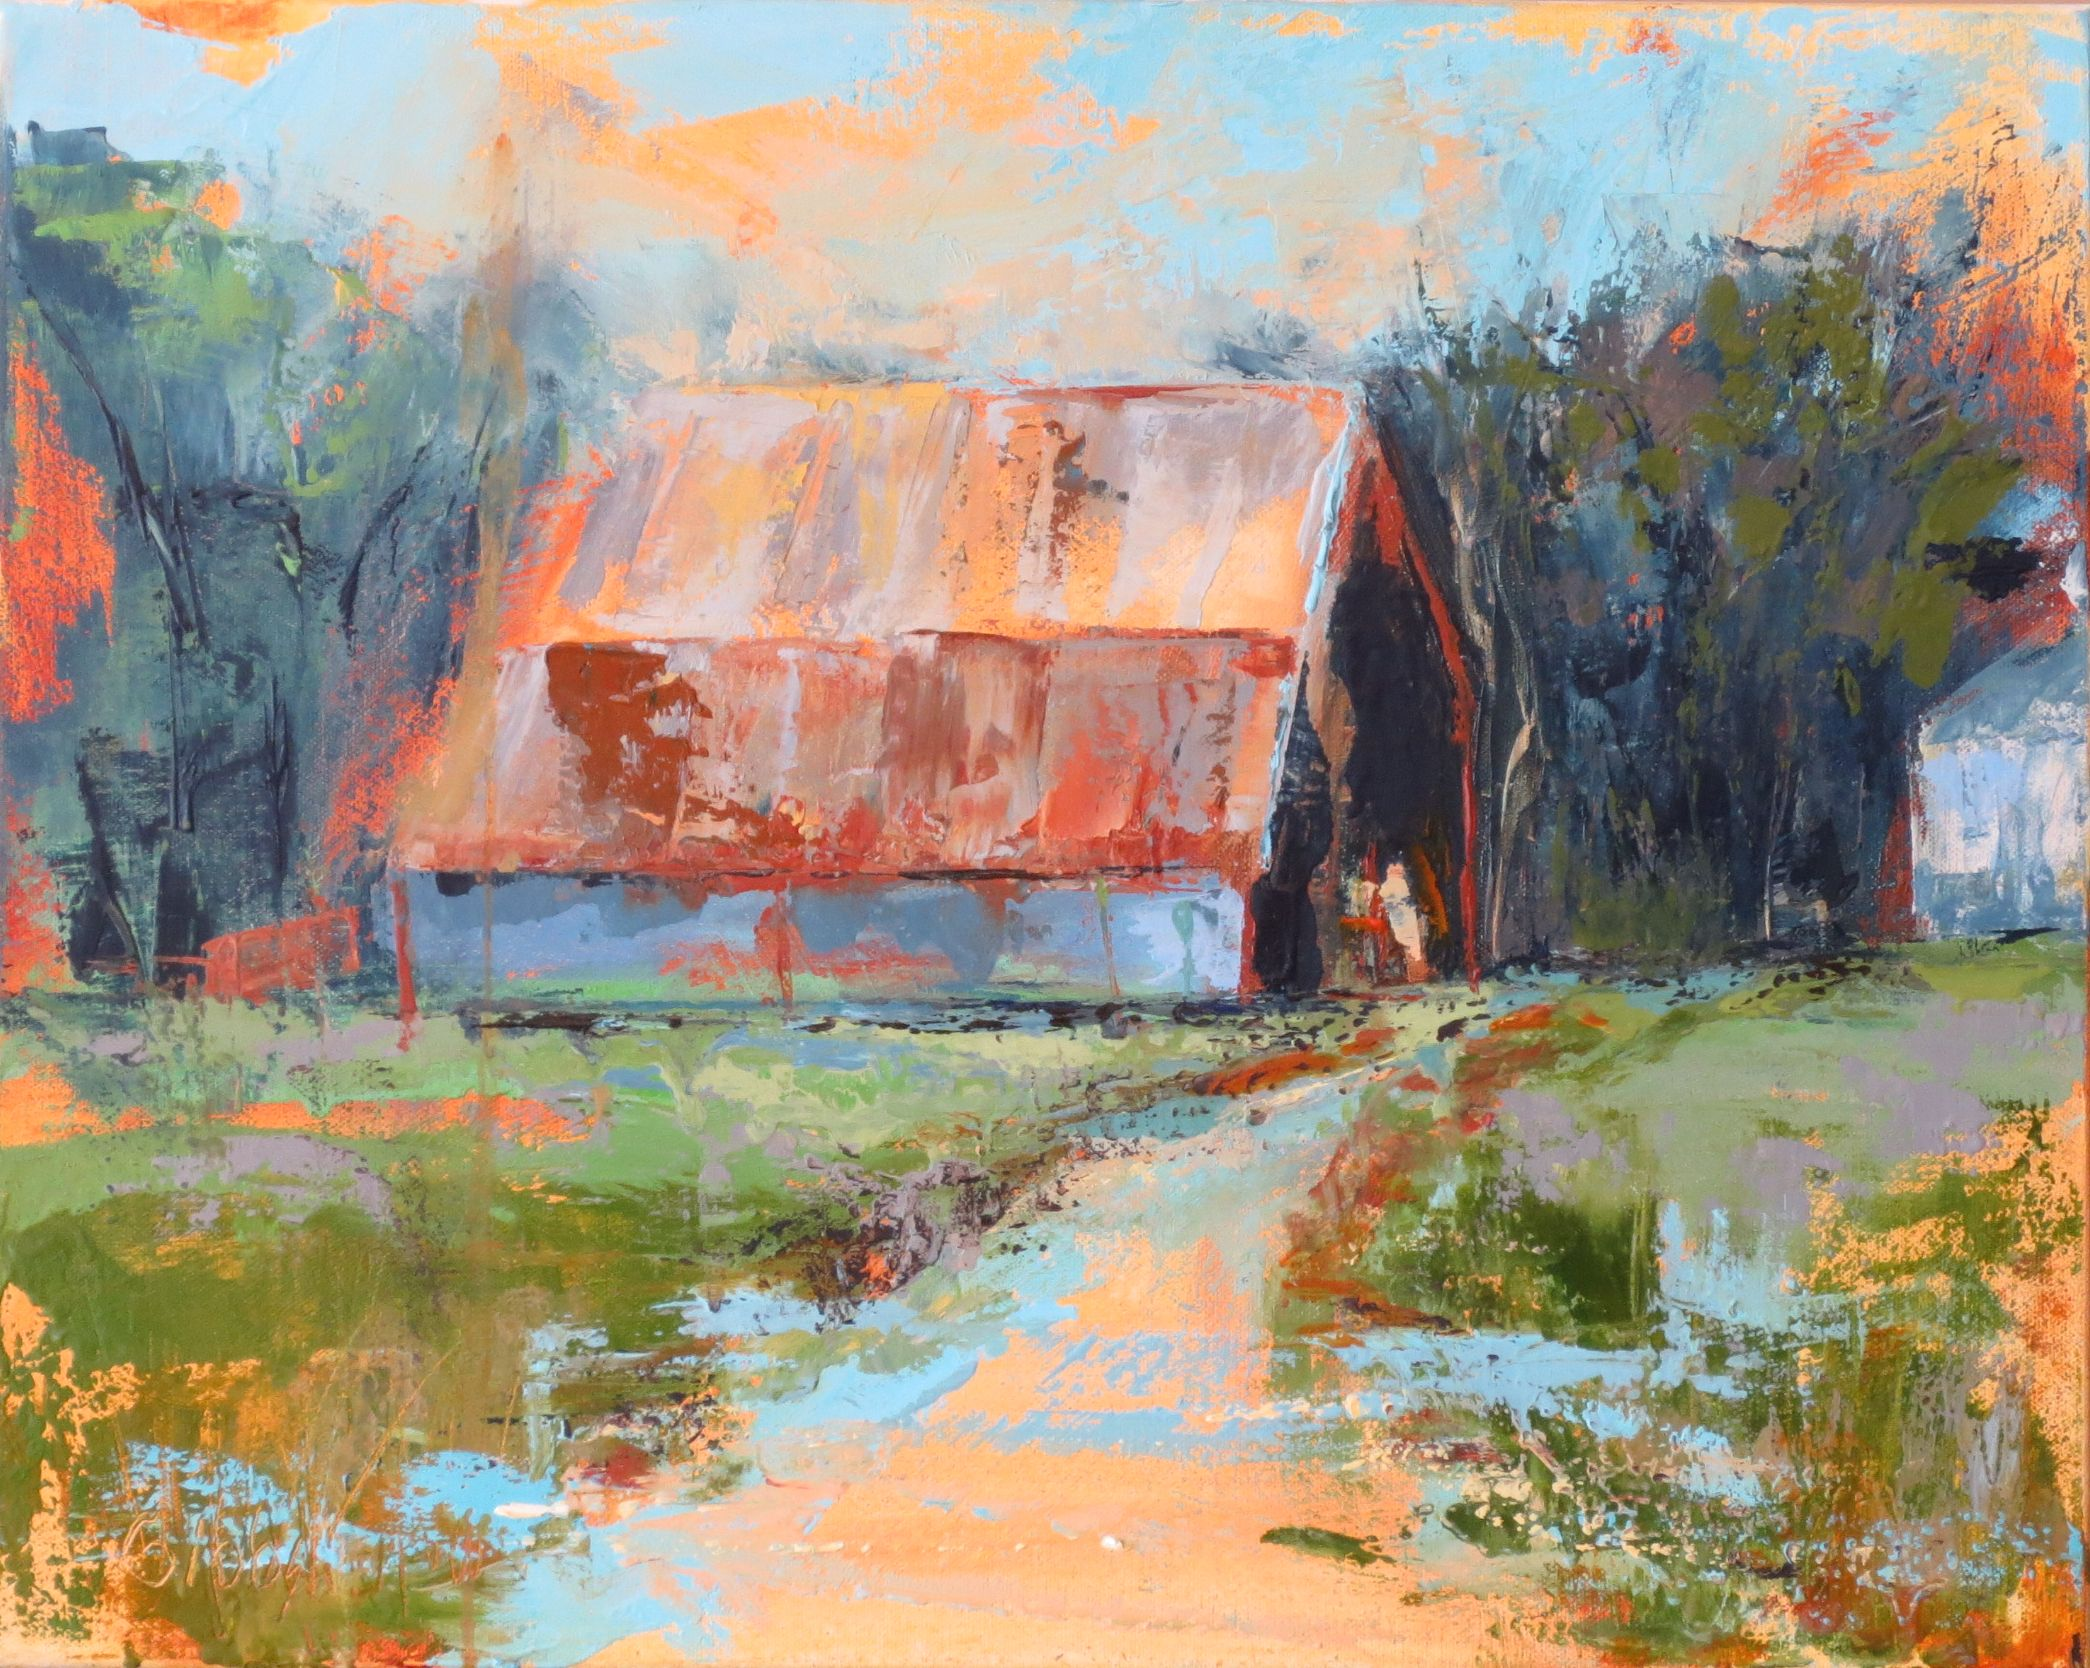 """Stowers Barn 3"", Oil on Canvas, 24x24"